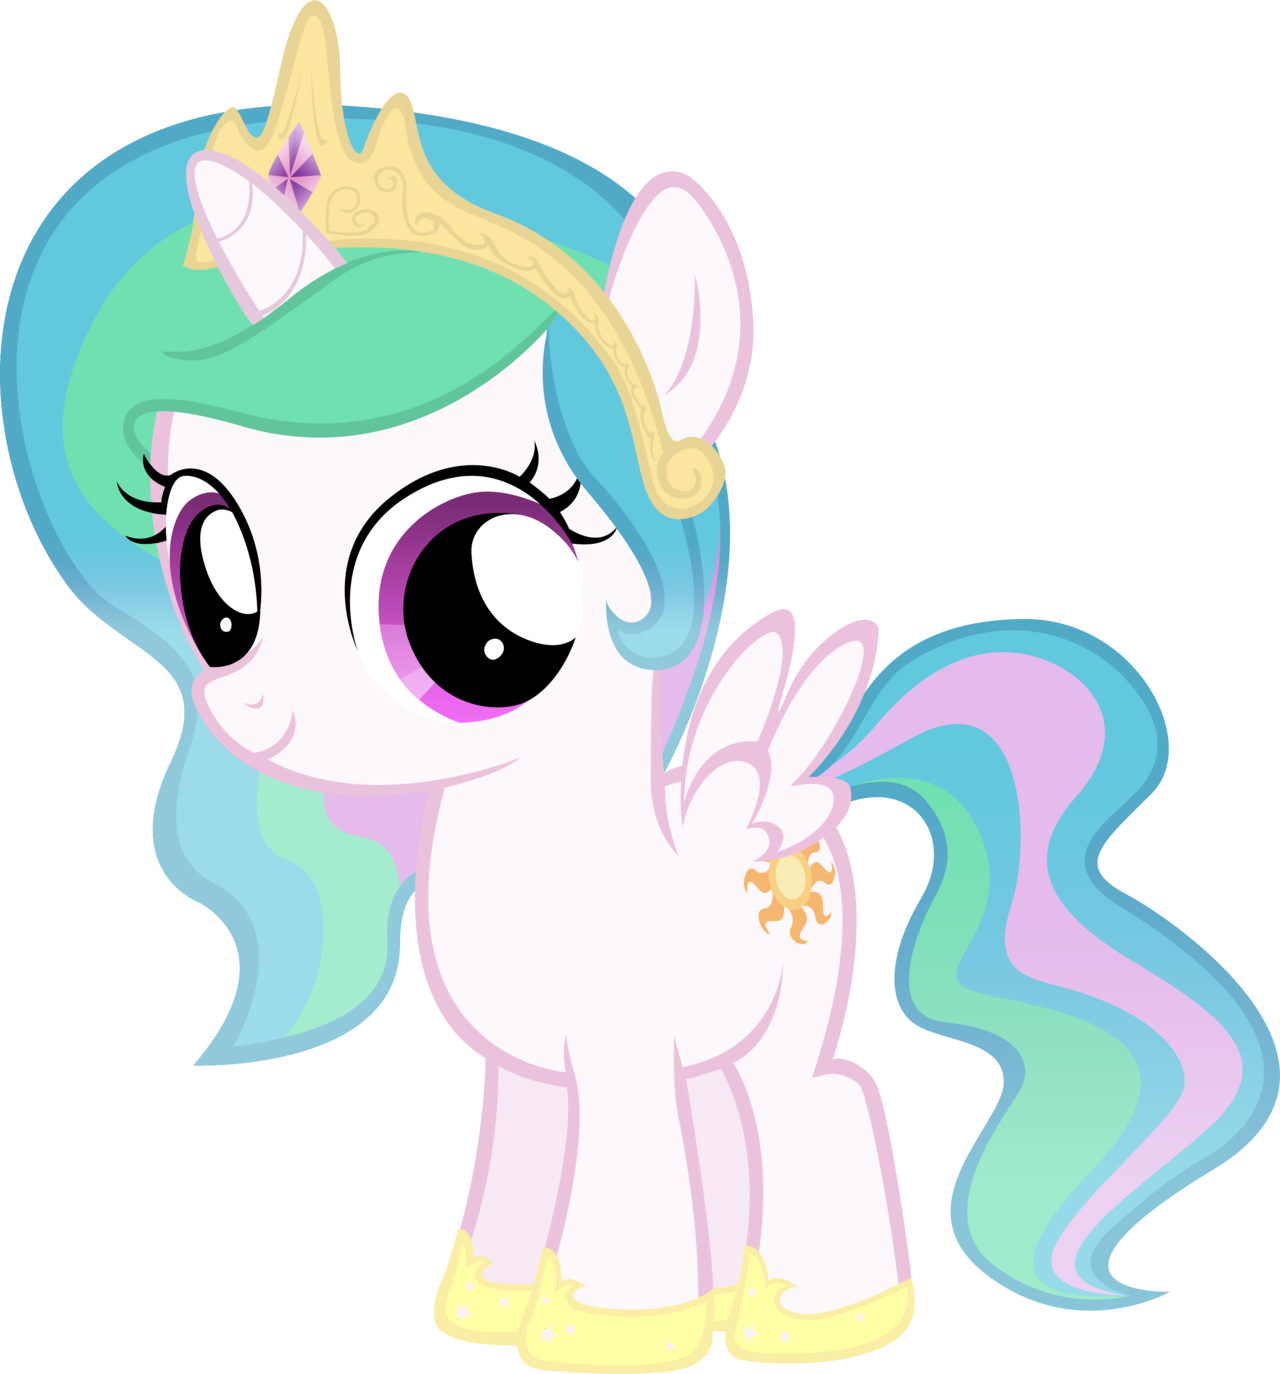 Celestia+Filly+by+MoongazePonies.deviantart.com+on+@deviantART.